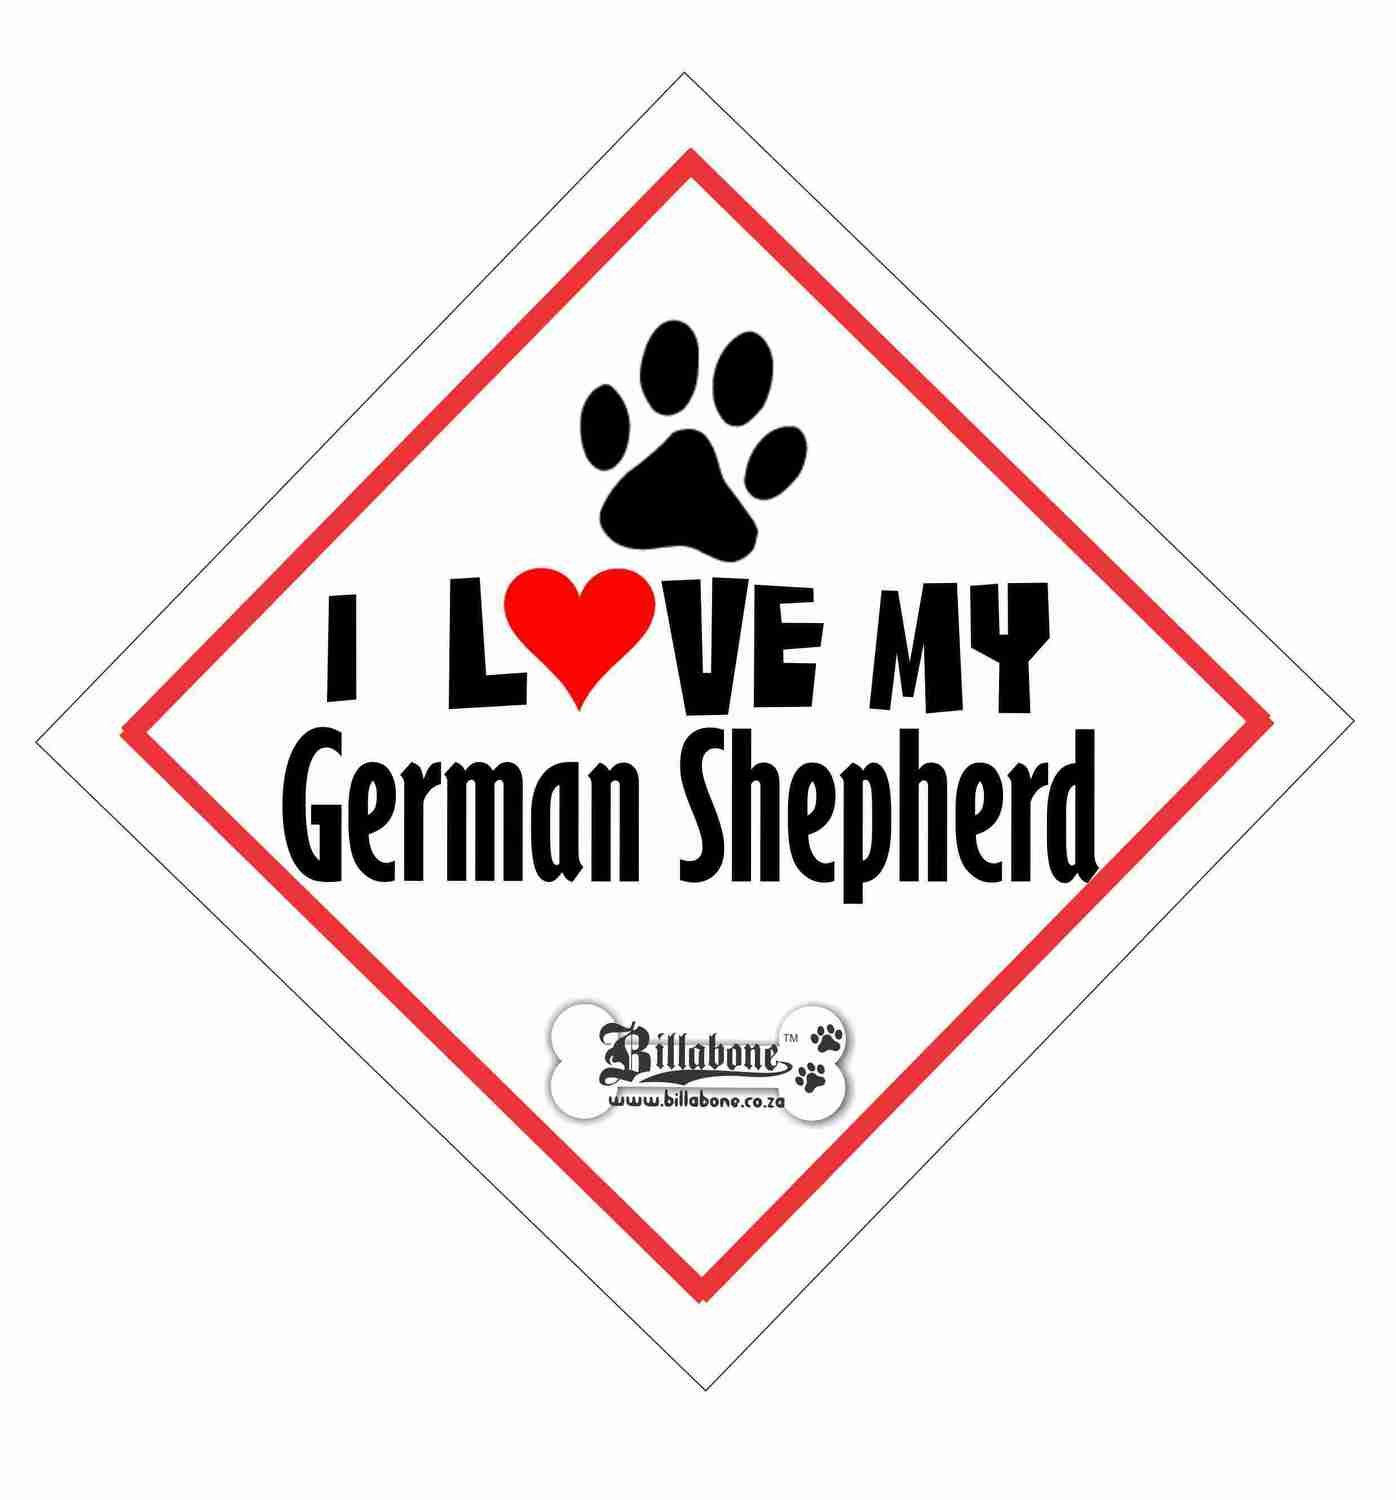 I love my German Shepherd On Board Sign or Sticker